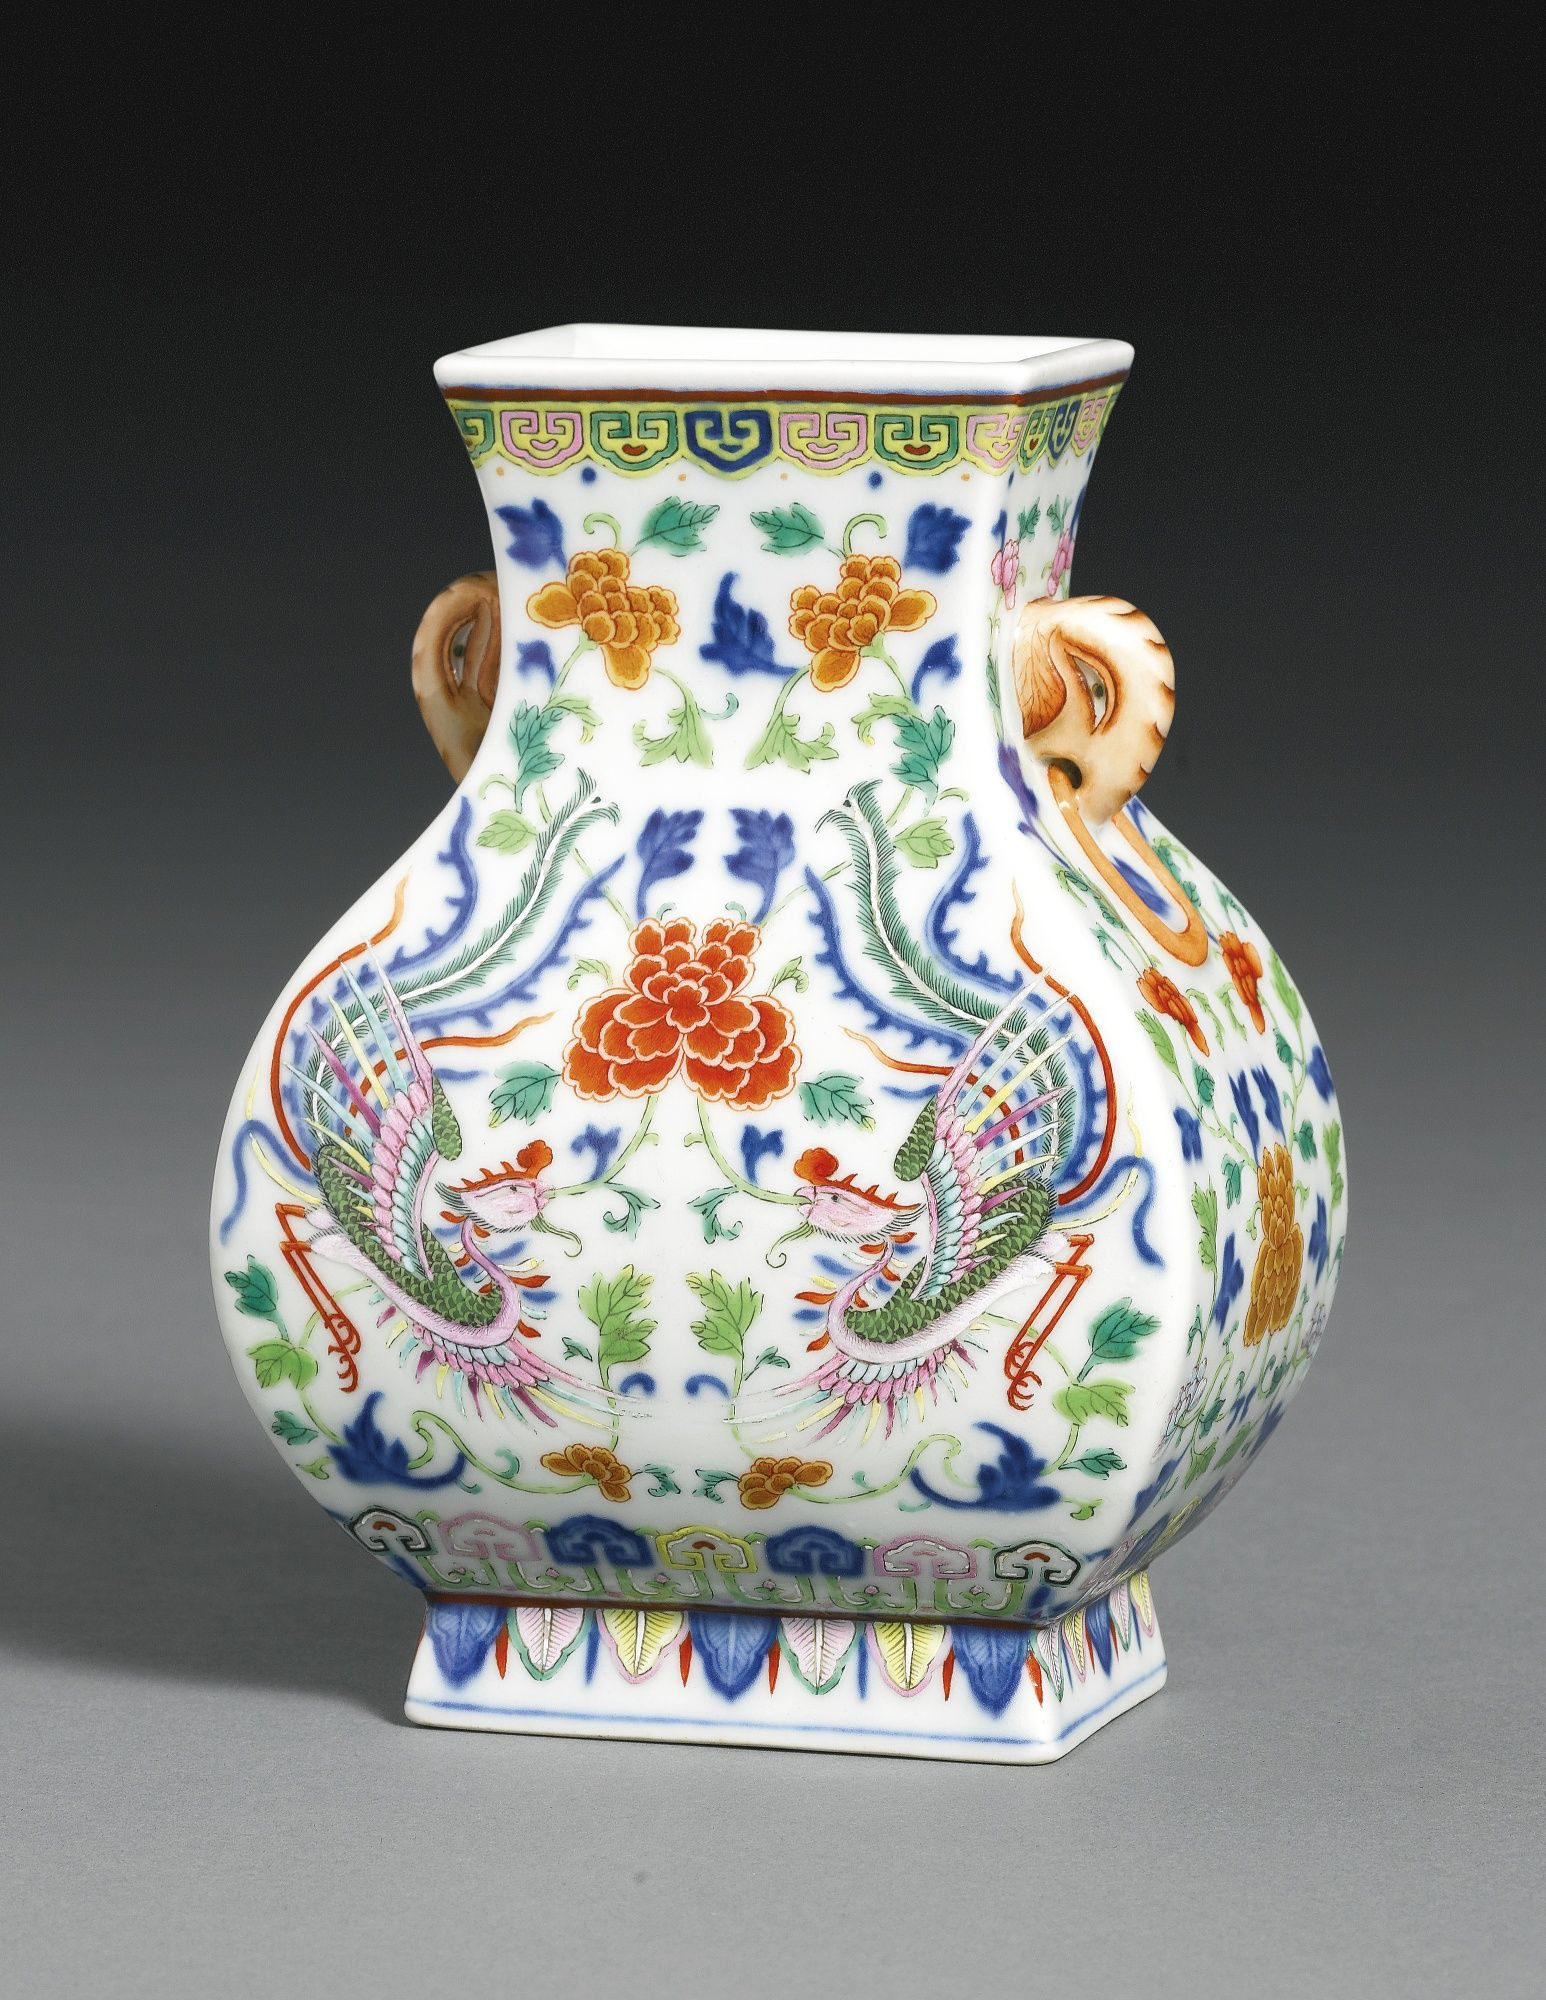 27 attractive Qing Dynasty Vase 2021 free download qing dynasty vase of a fine and rare underglaze blue polychrome enamel phoenix vase intended for a fine and rare underglaze blue polychrome enamel phoenix vase fanghu qianlong